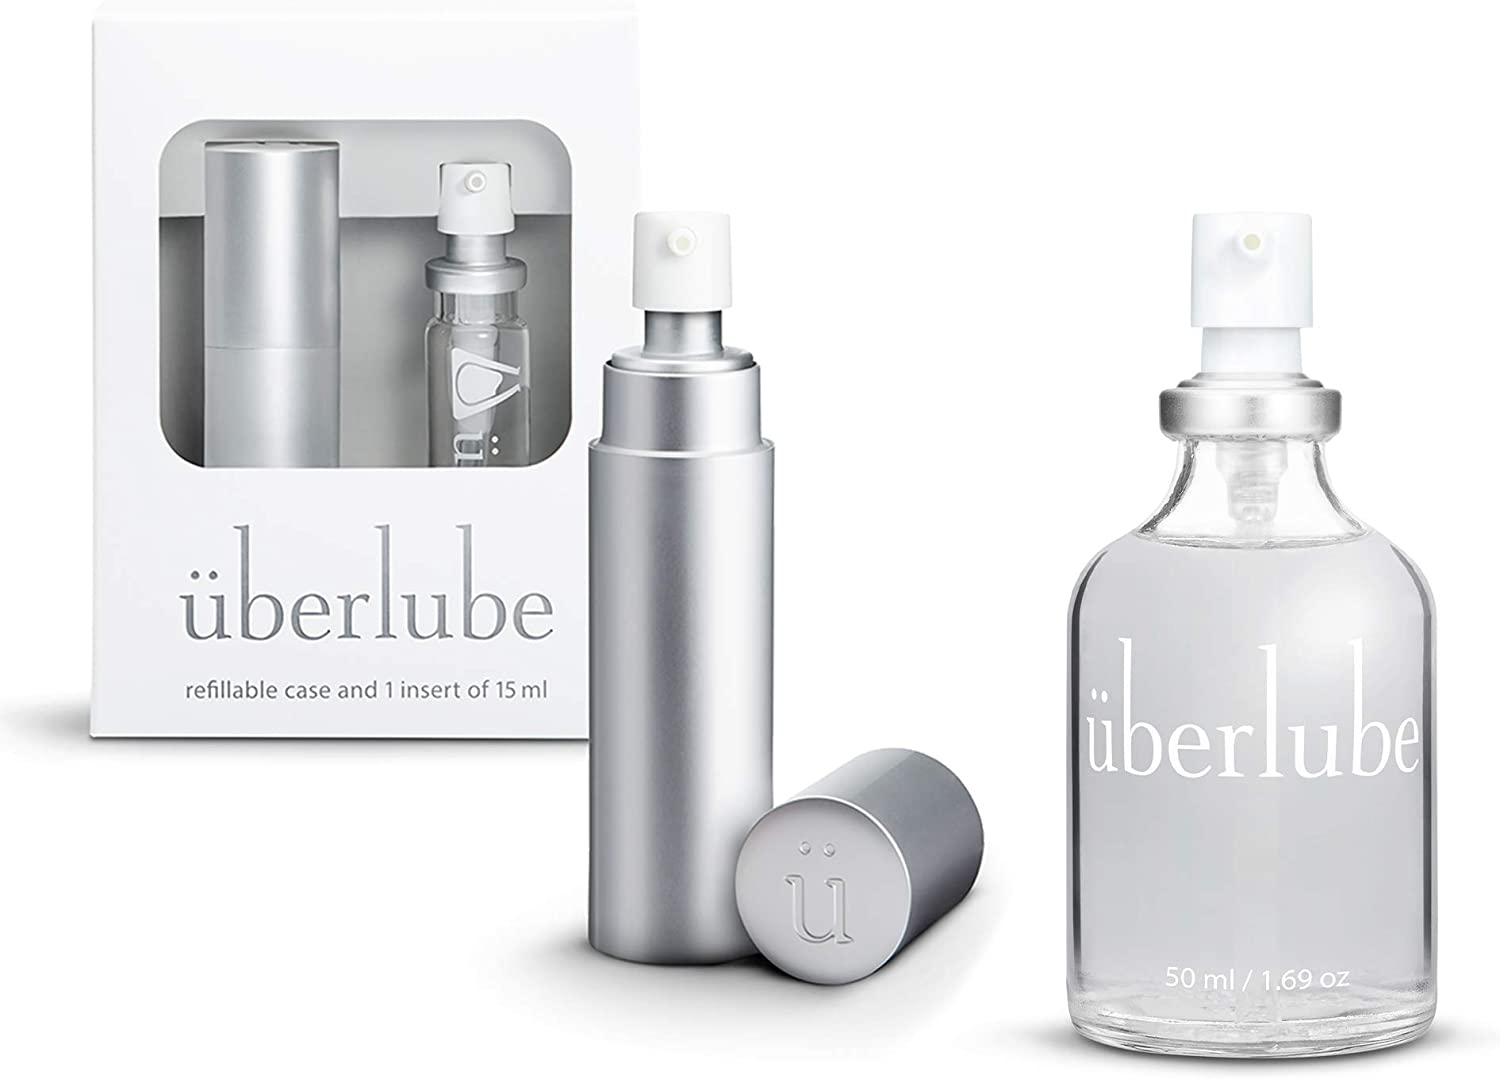 Überlube Lubricant Home and Travel Kit | Latex-Safe Natural Silicone Lube with Vitamin E | Unscented, Flavorless, Zero Residue, Works Underwater - 50ml + 15ml Silver Kit